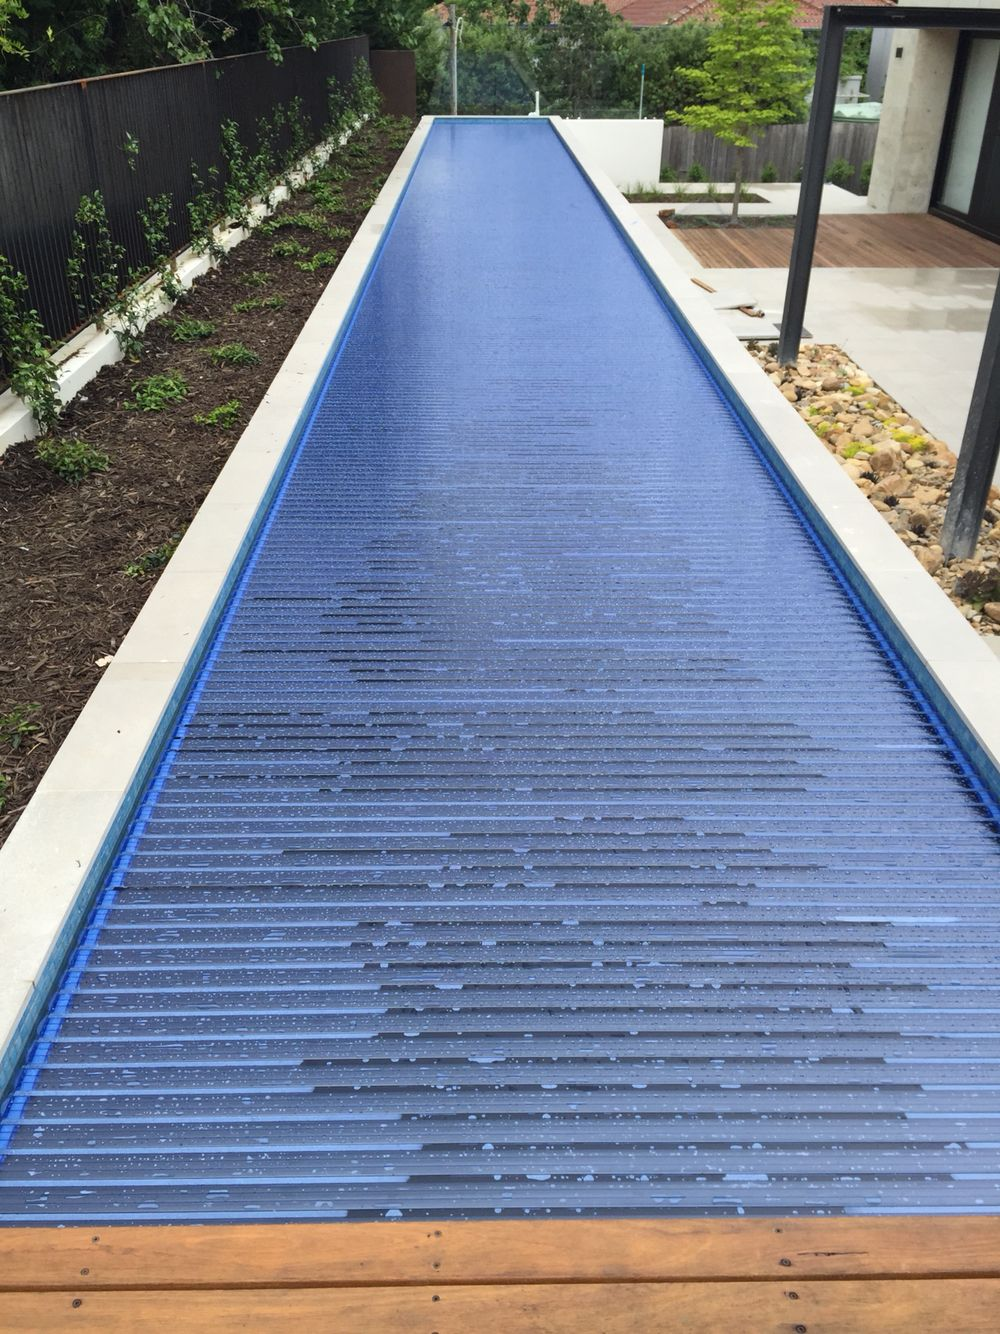 Automated Solar Remco Cover For 25m Lap Pool Adds 3 4 Degrees On Sunny Day To Pool Saves Water Heat Lo Lap Pools Backyard Pool Water Features Swimming Pools